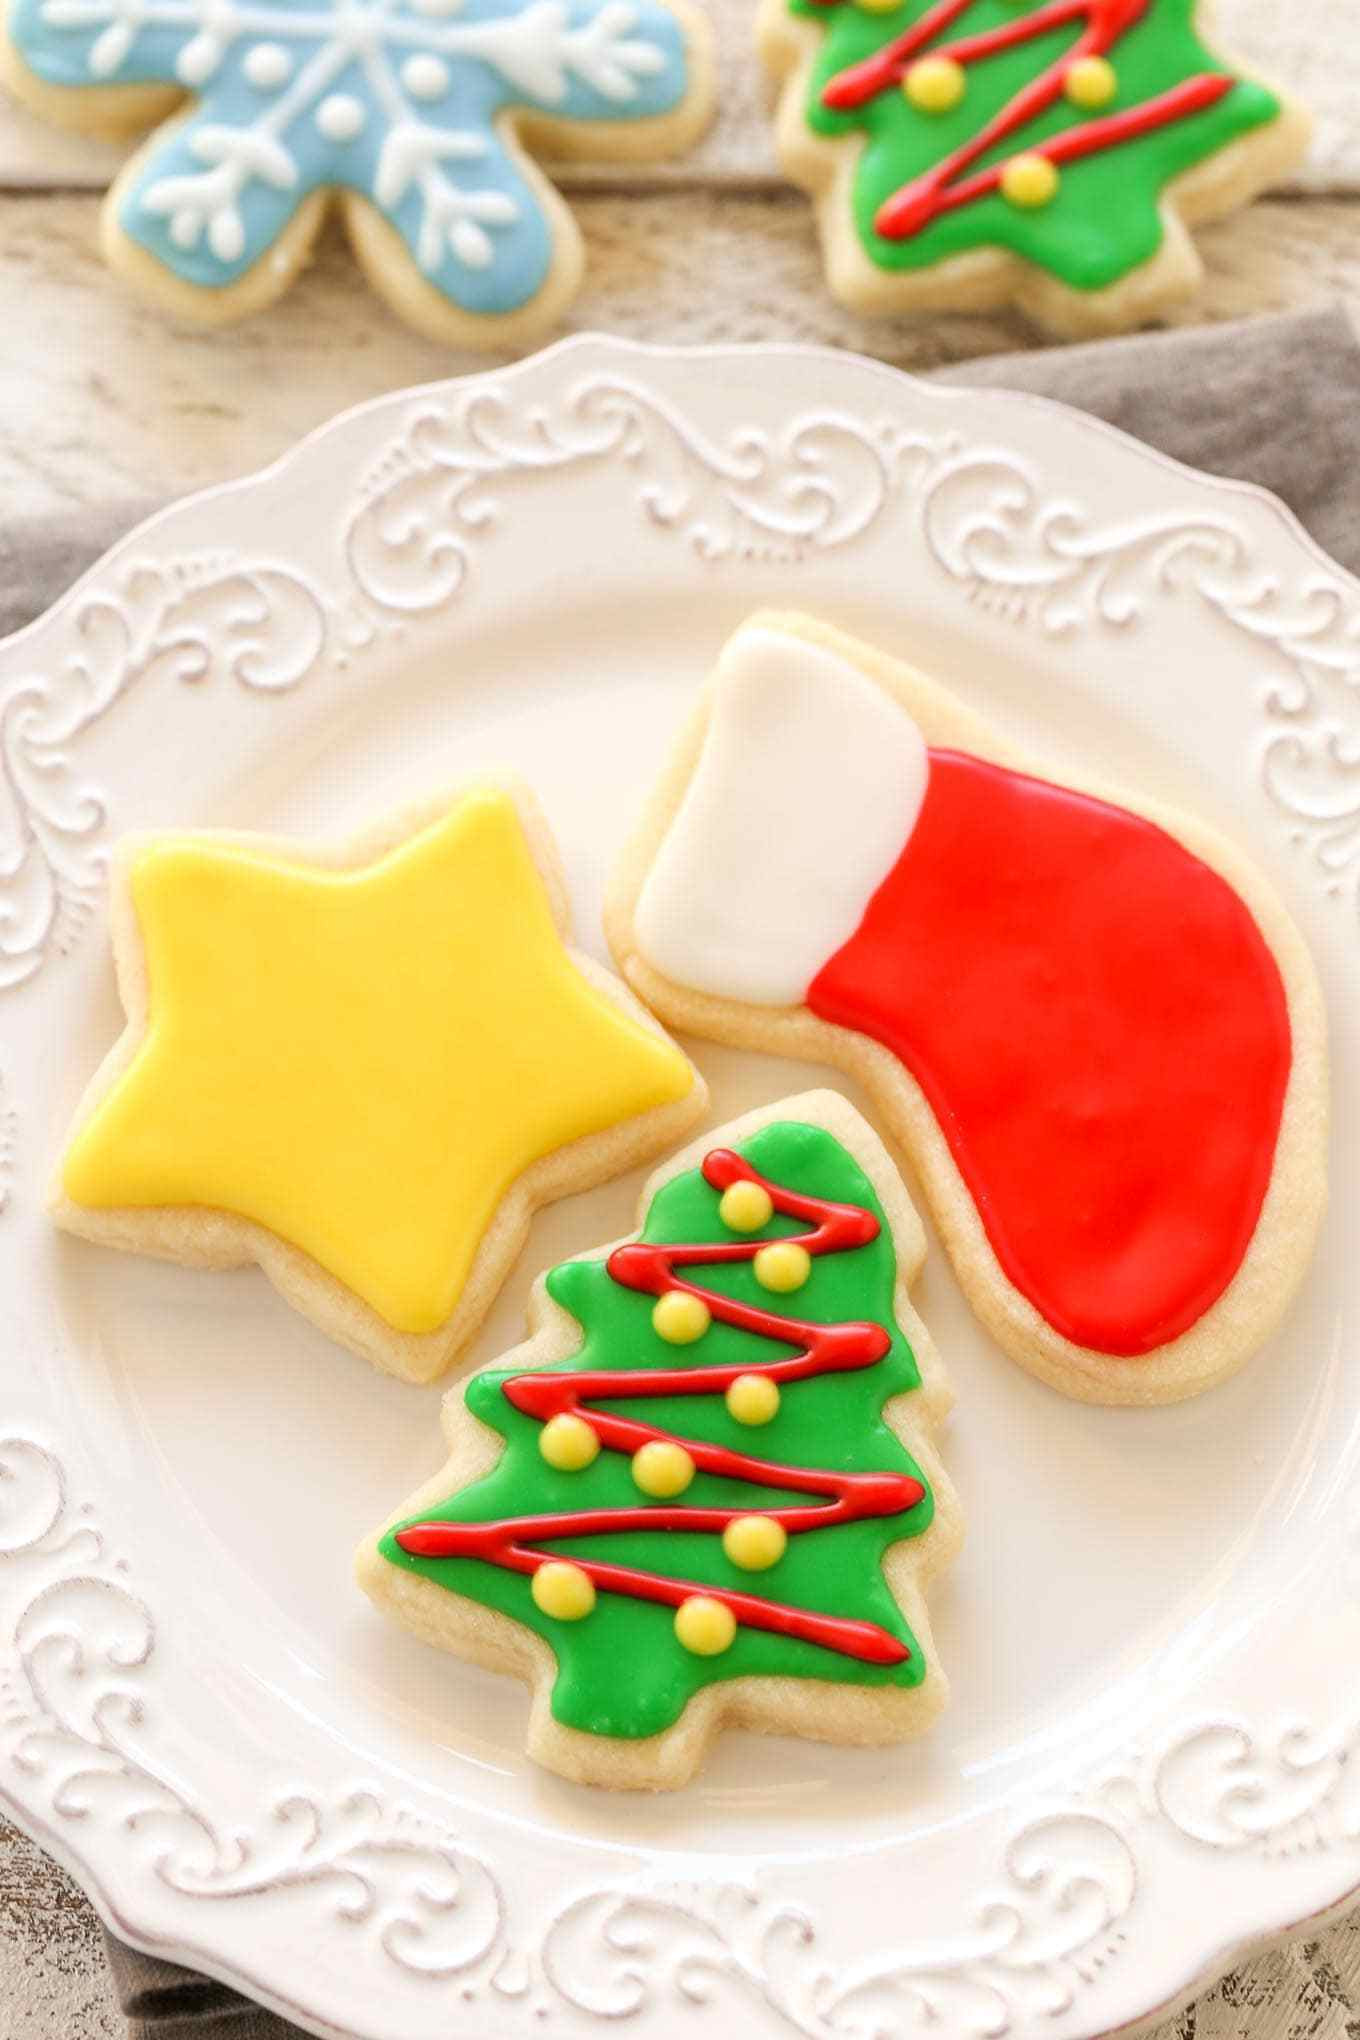 Cookies To Make For Christmas  Soft Christmas Cut Out Sugar Cookies Live Well Bake ten